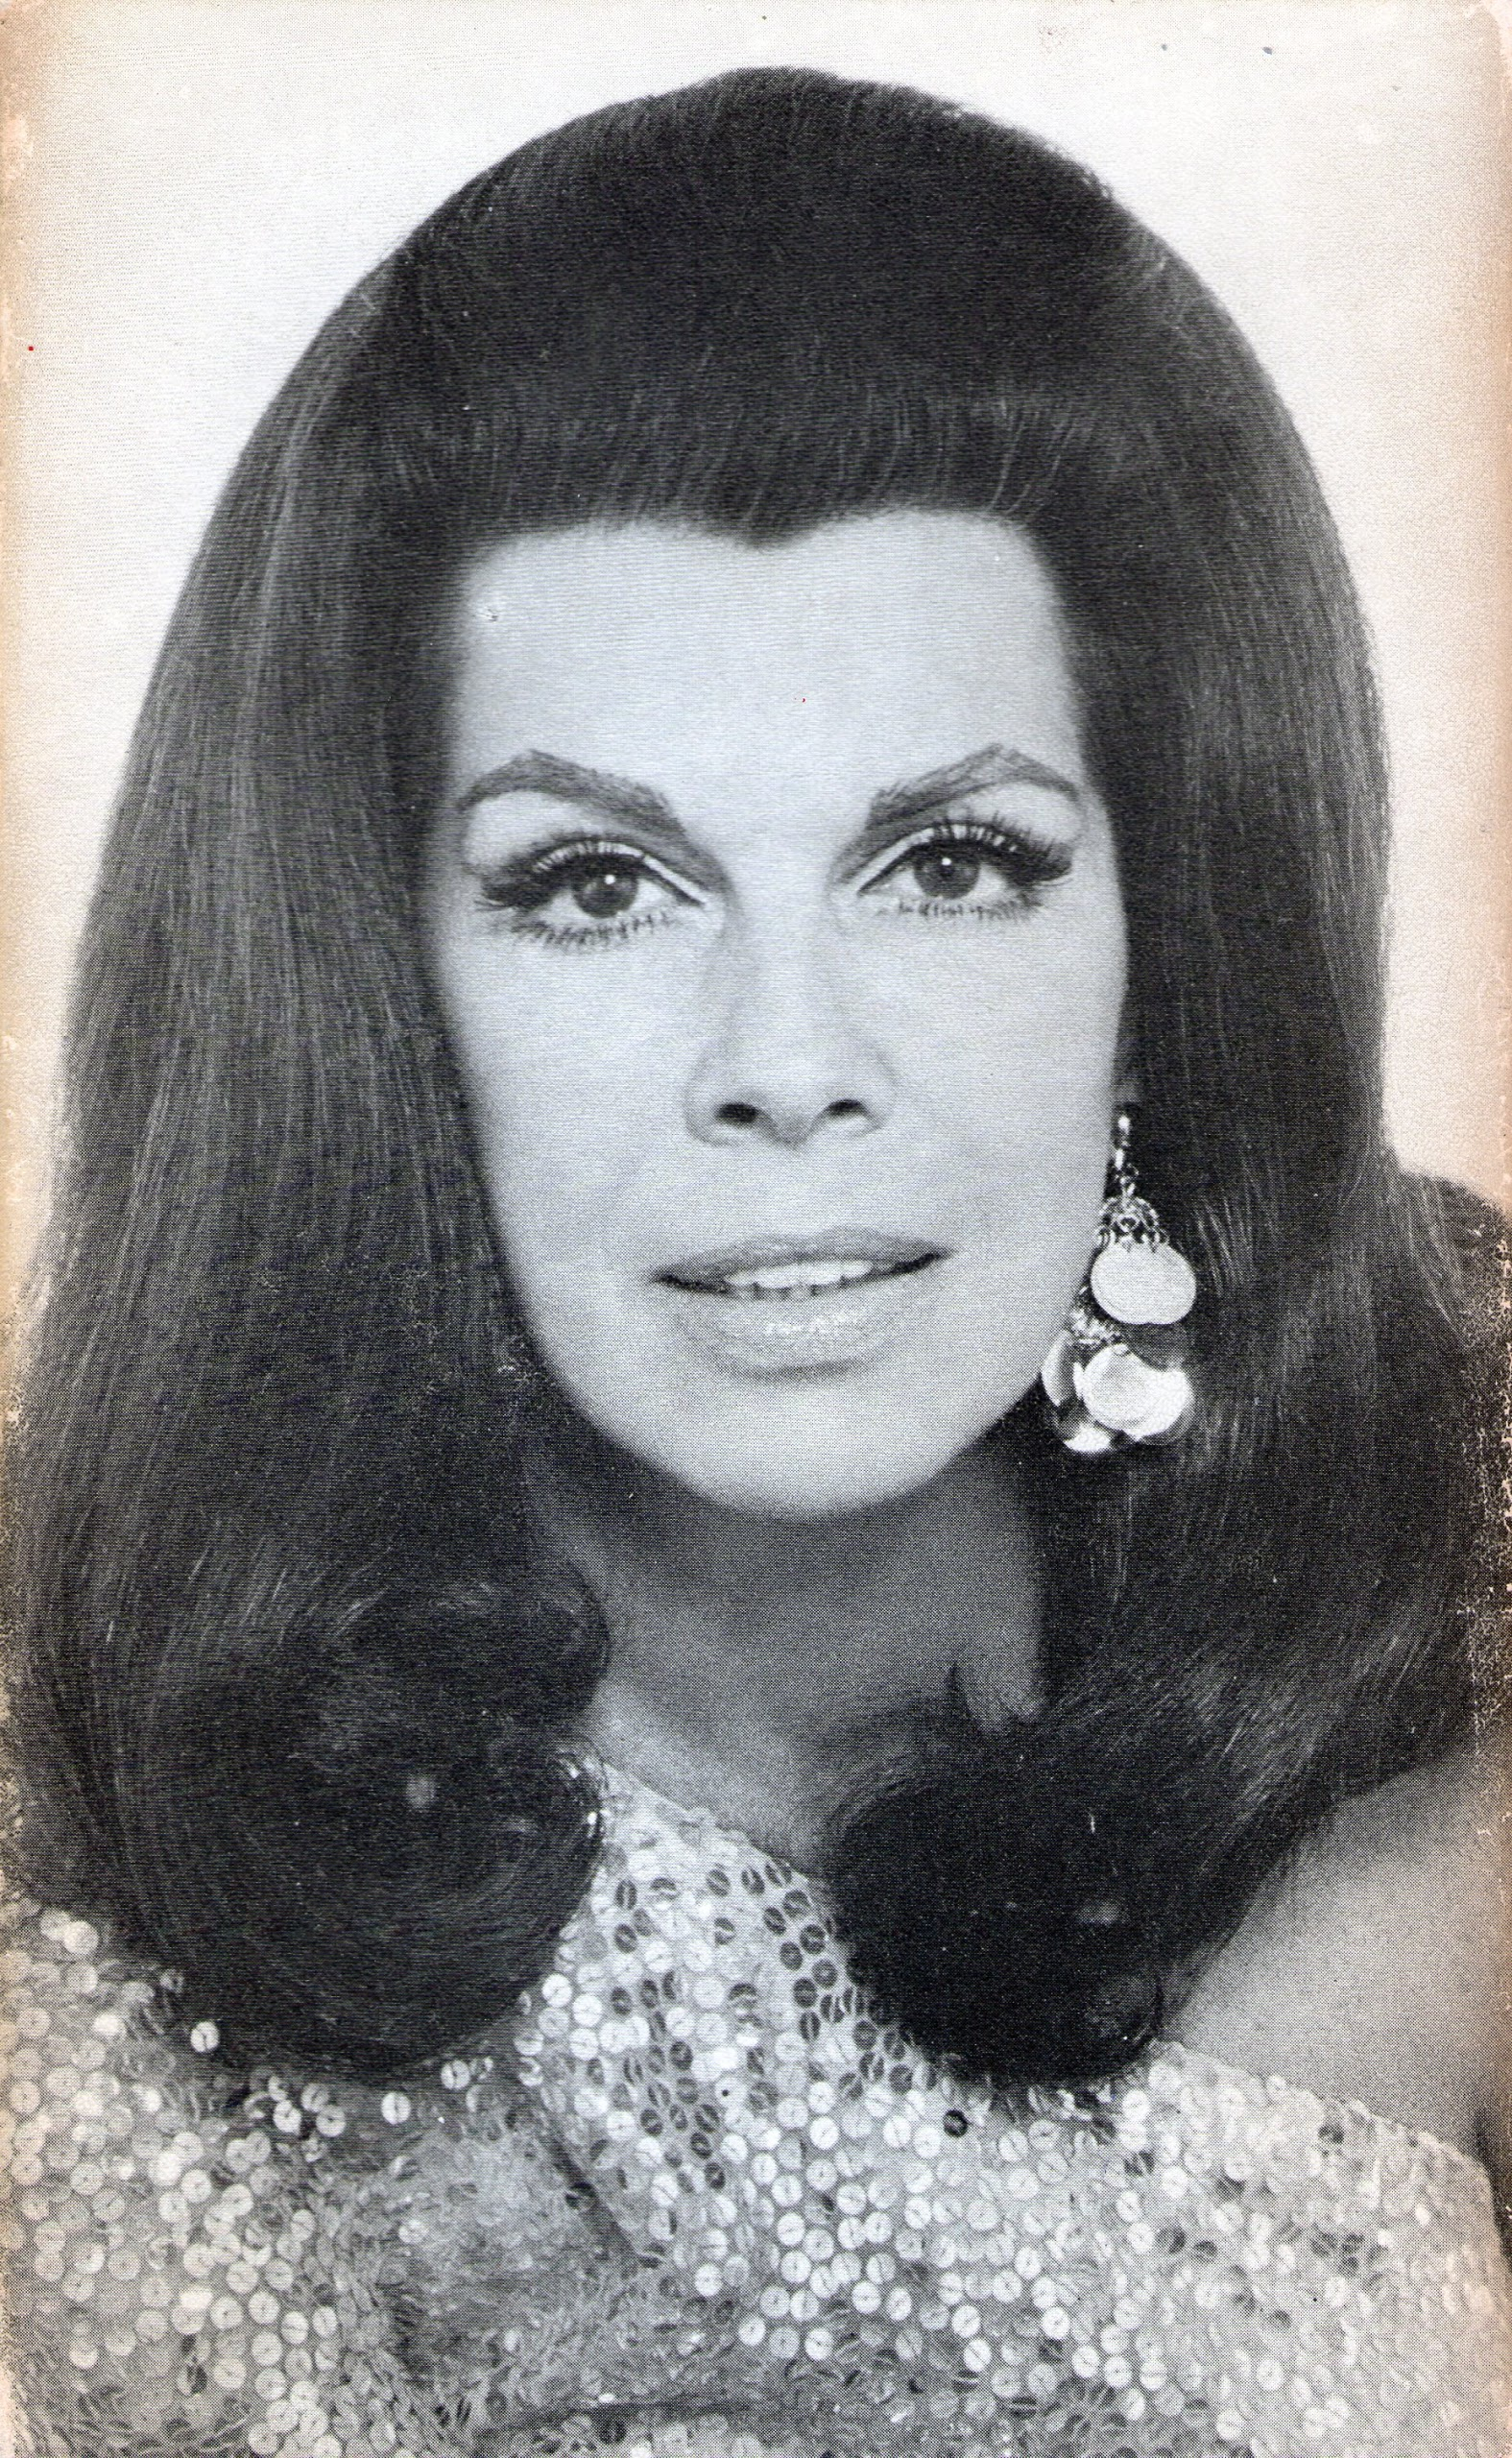 Jacqueline Susann (Credit: Wikimedia Commons user  Happyprince , used with Creative Commons license)